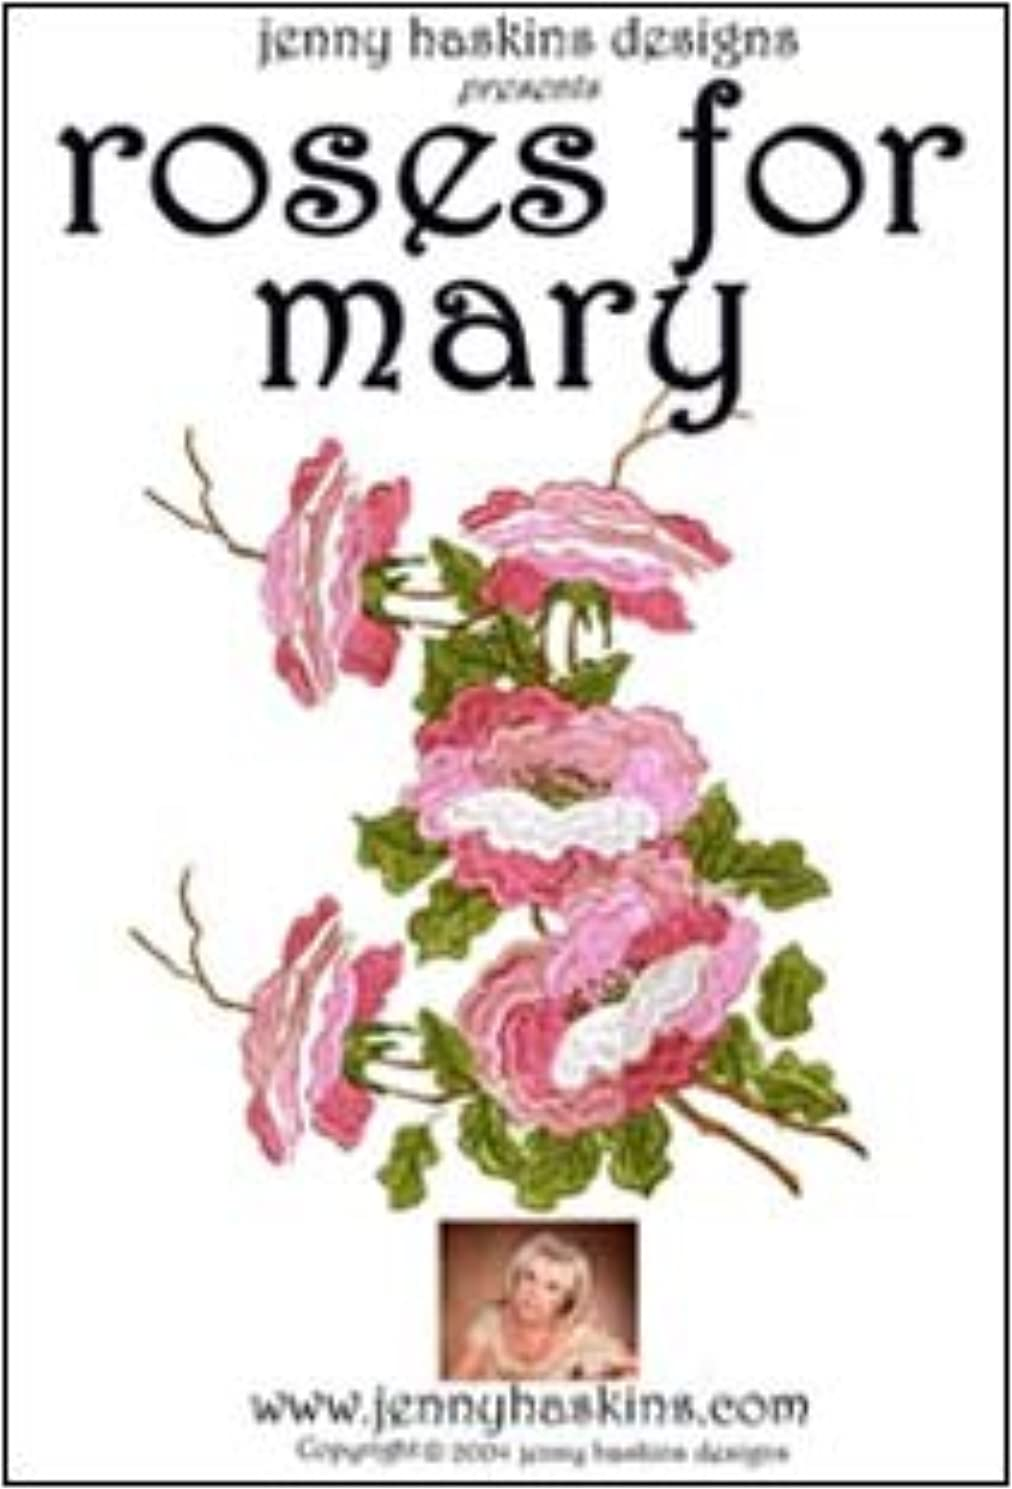 Roses for Mary by Jenny Haskins Designs